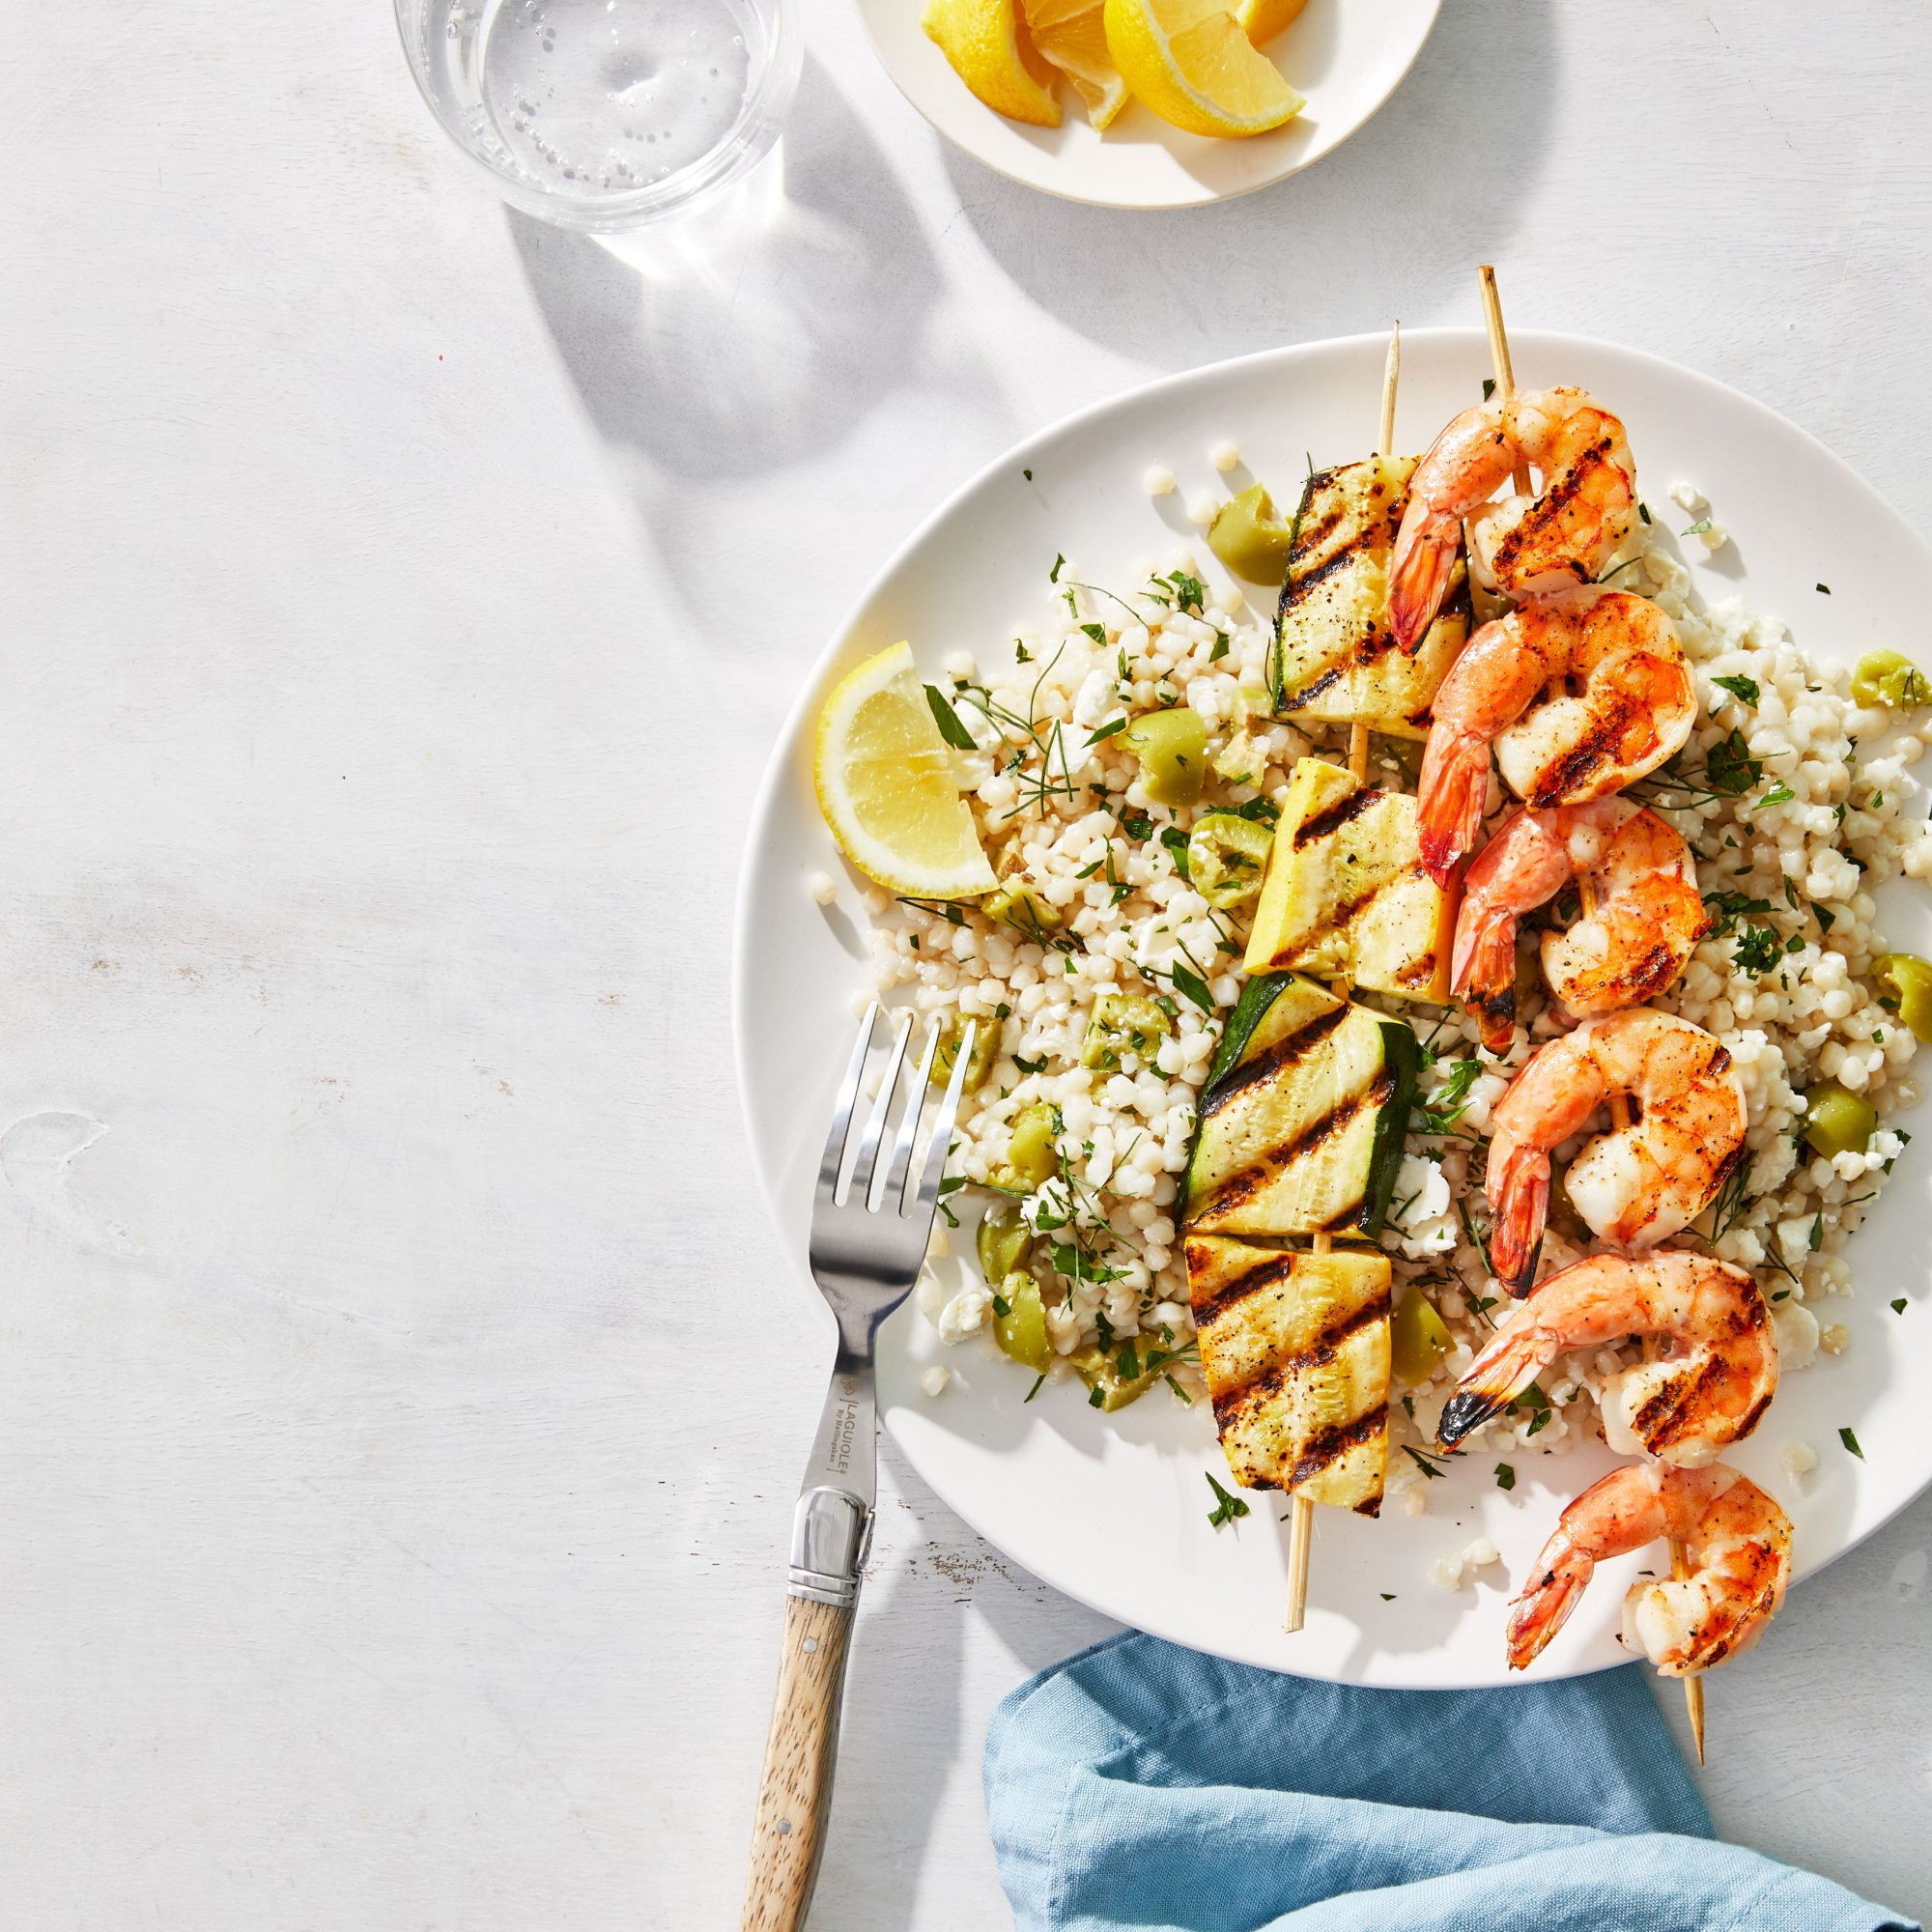 Grilled Shrimp and Squash Skewers with Herbed Couscous